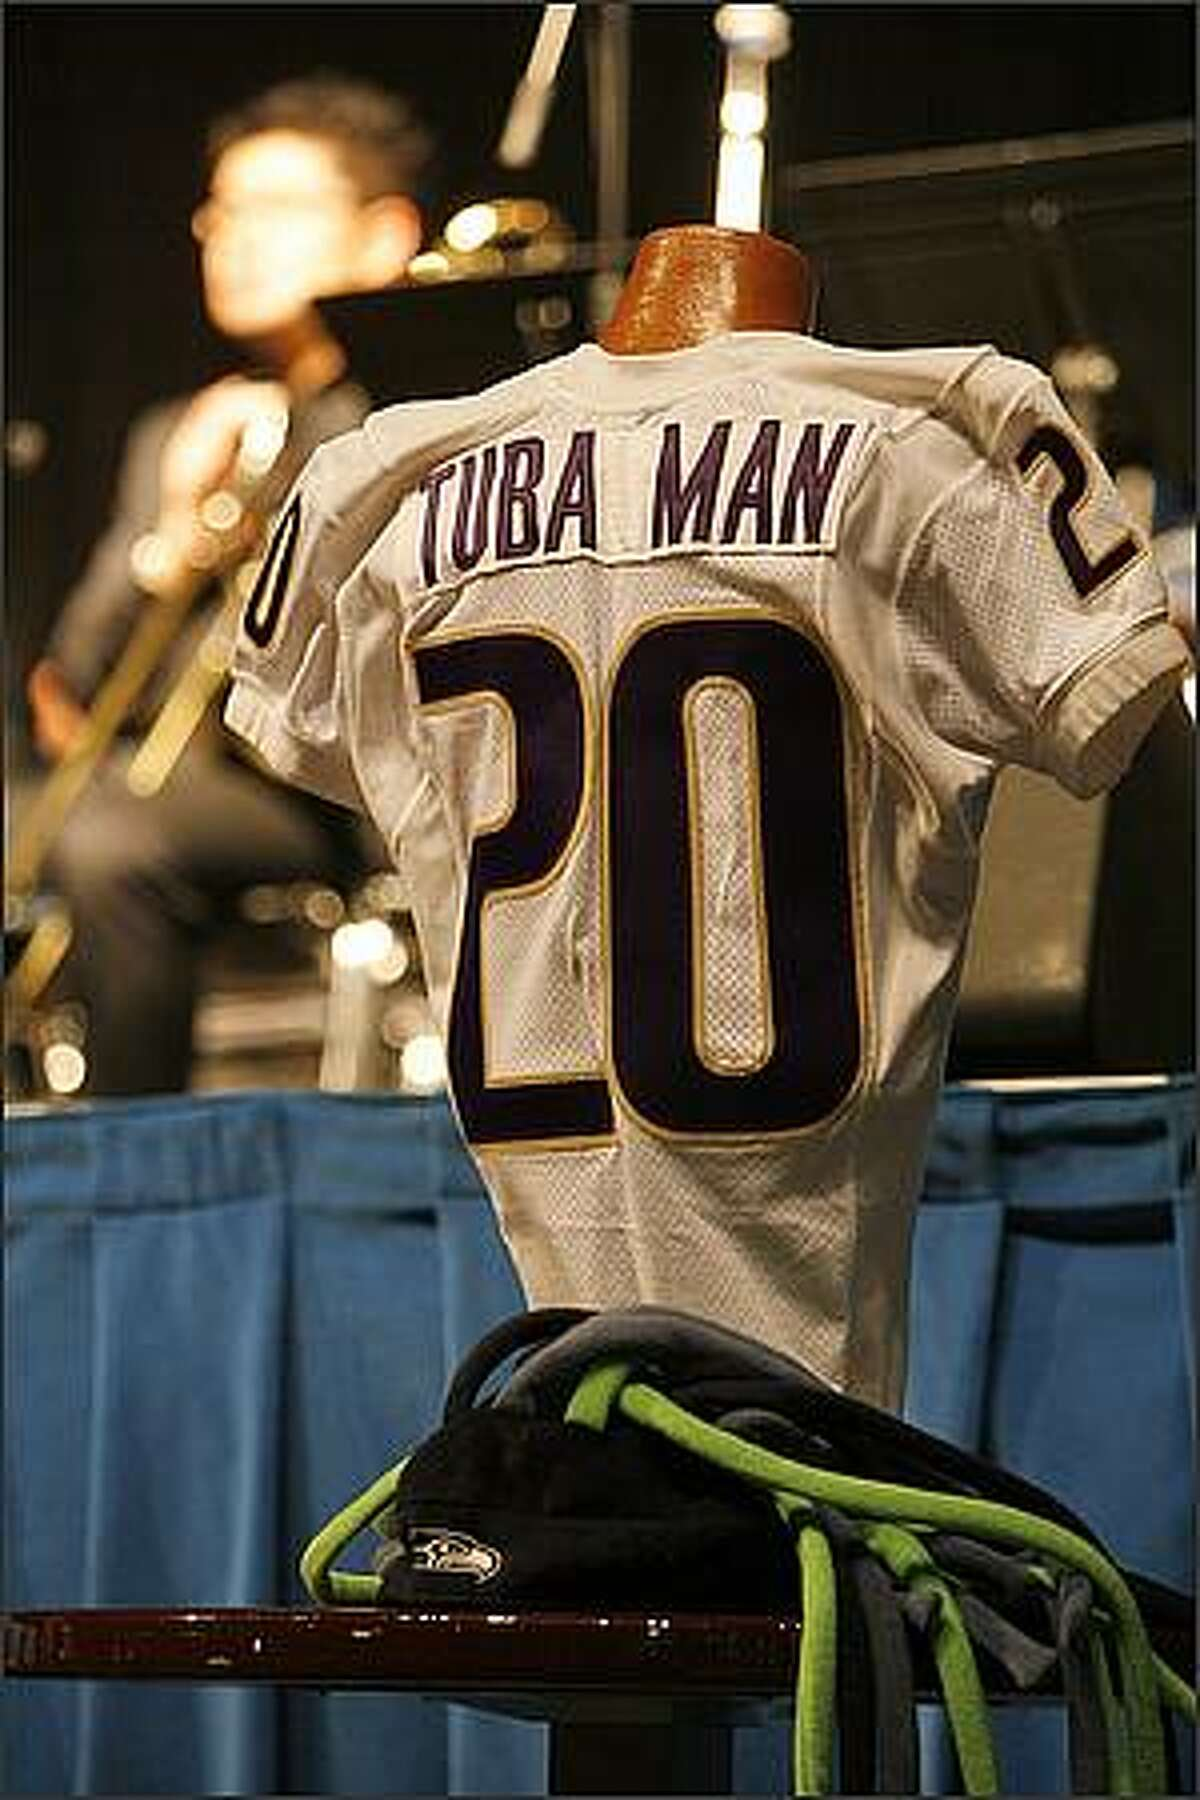 A University of Washington Huskies jersey is displayed during a memorial service for slain Tuba Man, Edward McMichael held at the Qwest Field Events Center in Seattle.